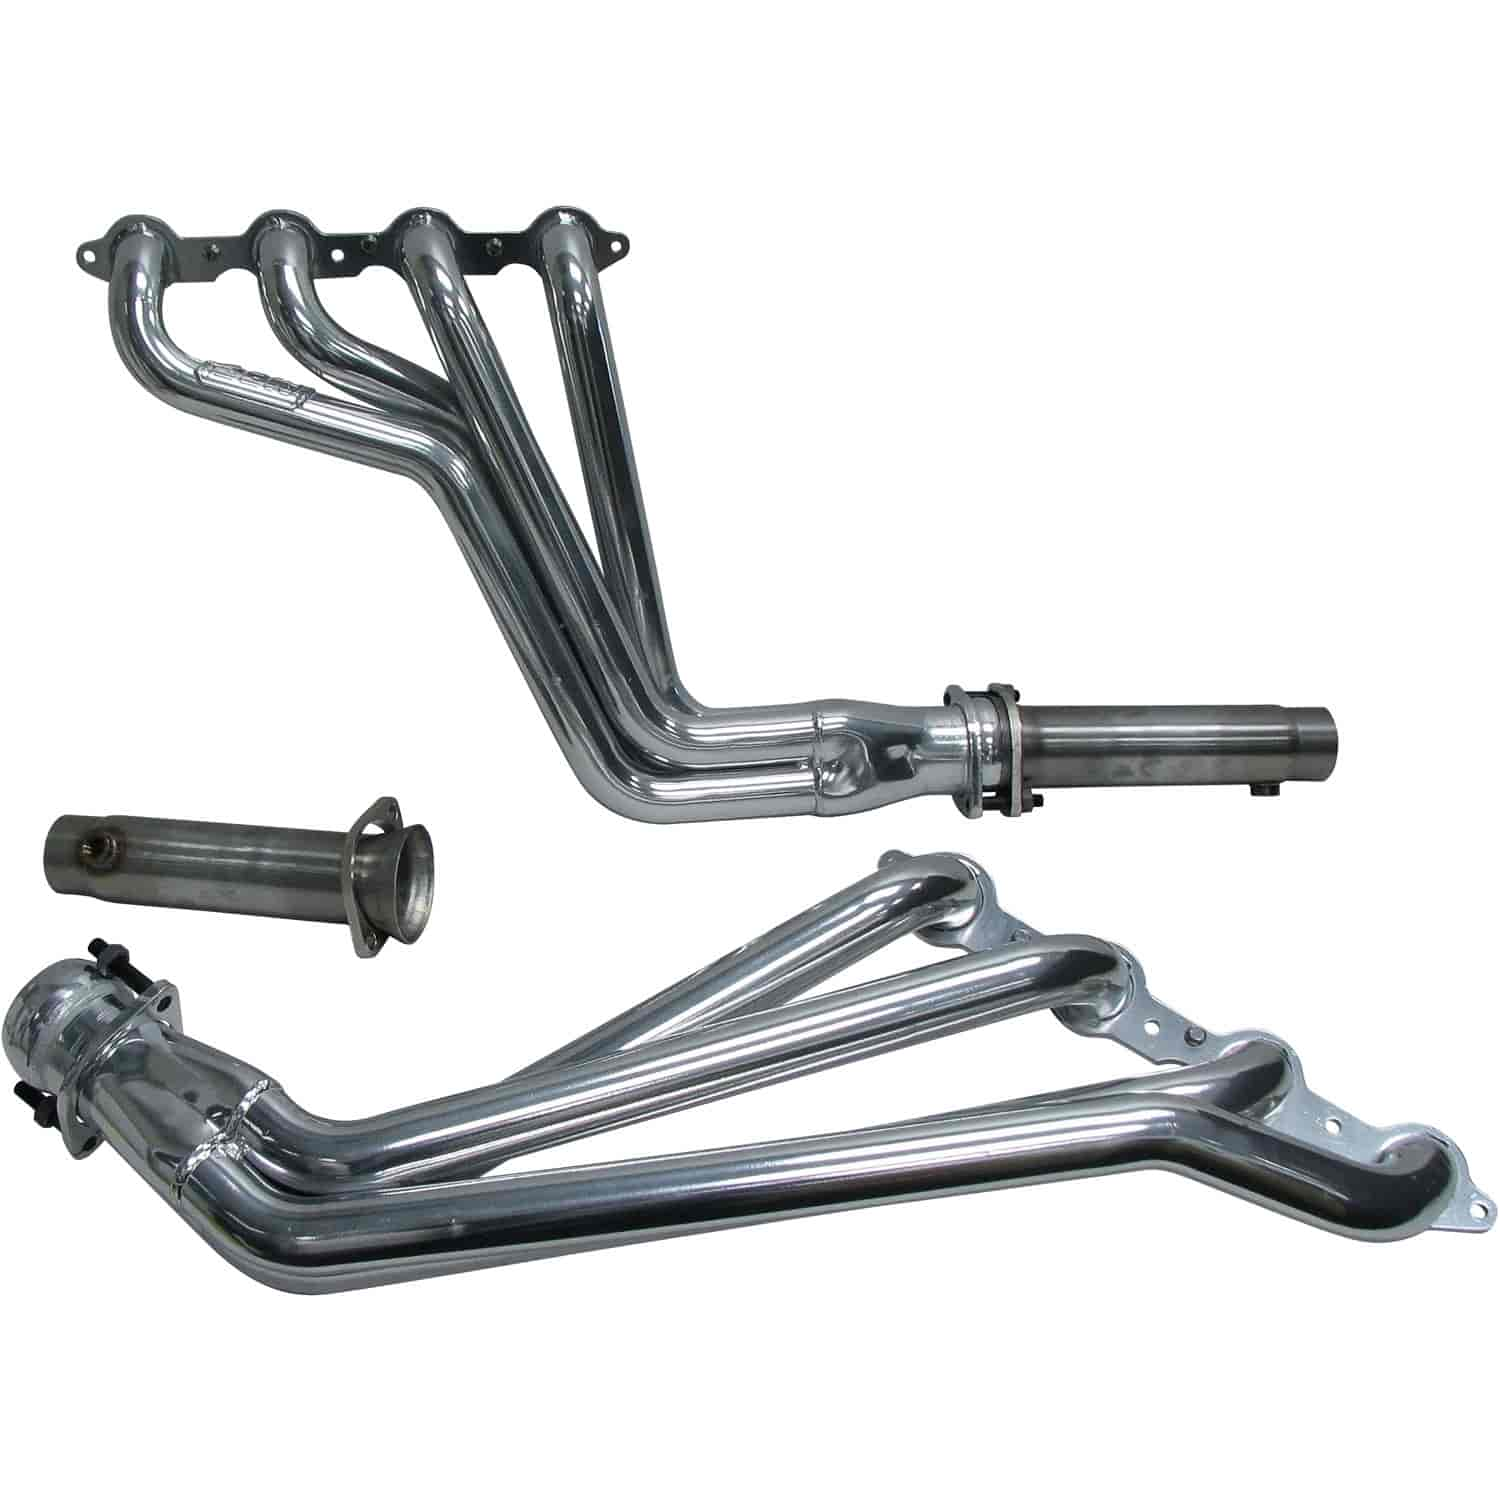 BBK Performance Parts 40310